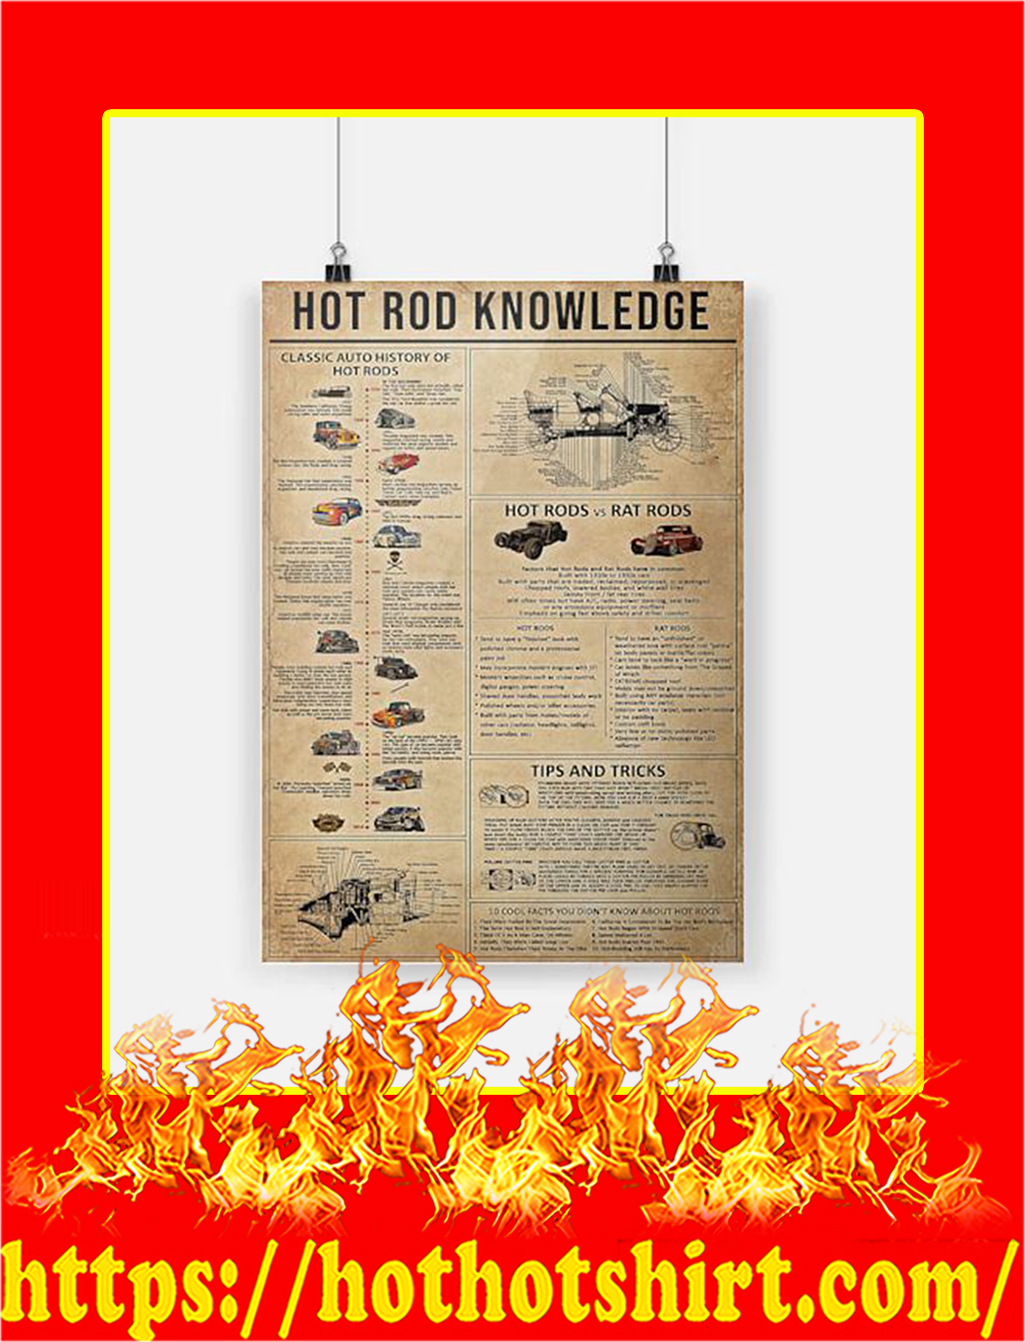 Hot rod knowledge Poster - A3